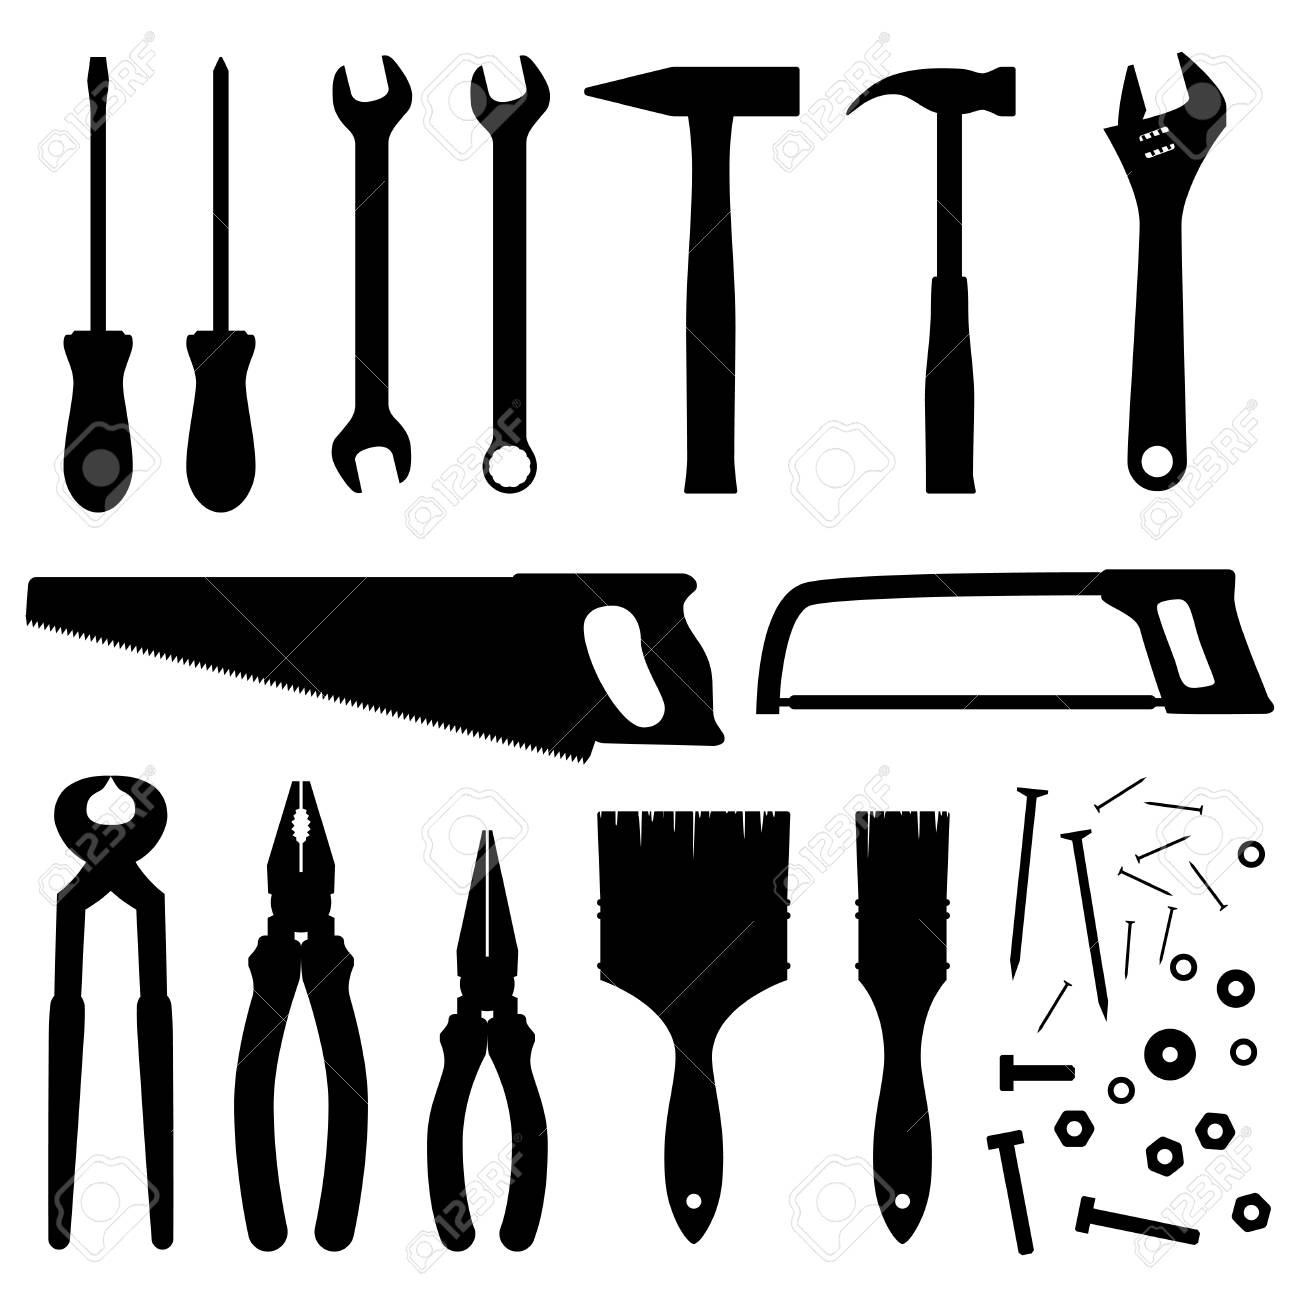 Hand industrial and building tools vector silhouettes. Handyman...